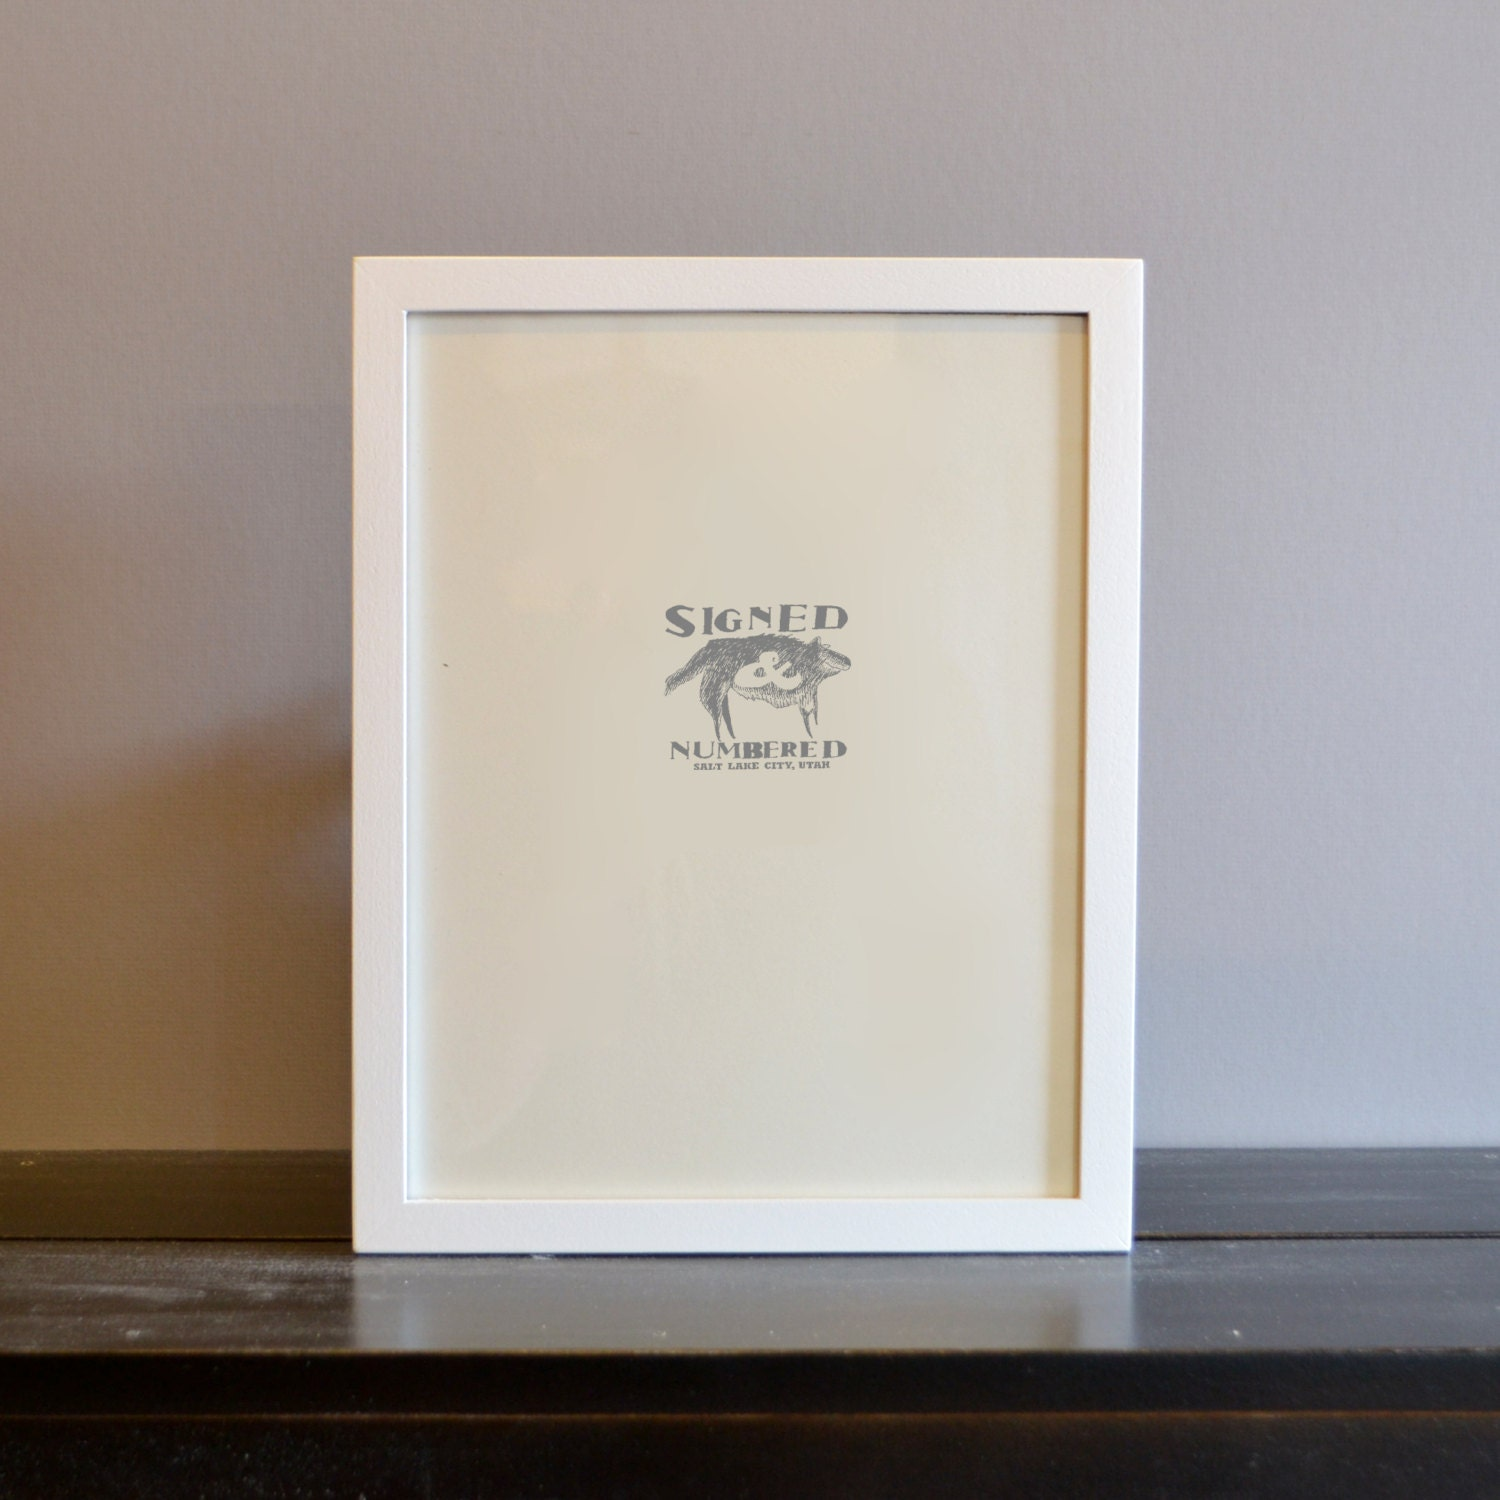 8.5 x 11 Picture Frame in Peewee Style with Solid White Finish ...